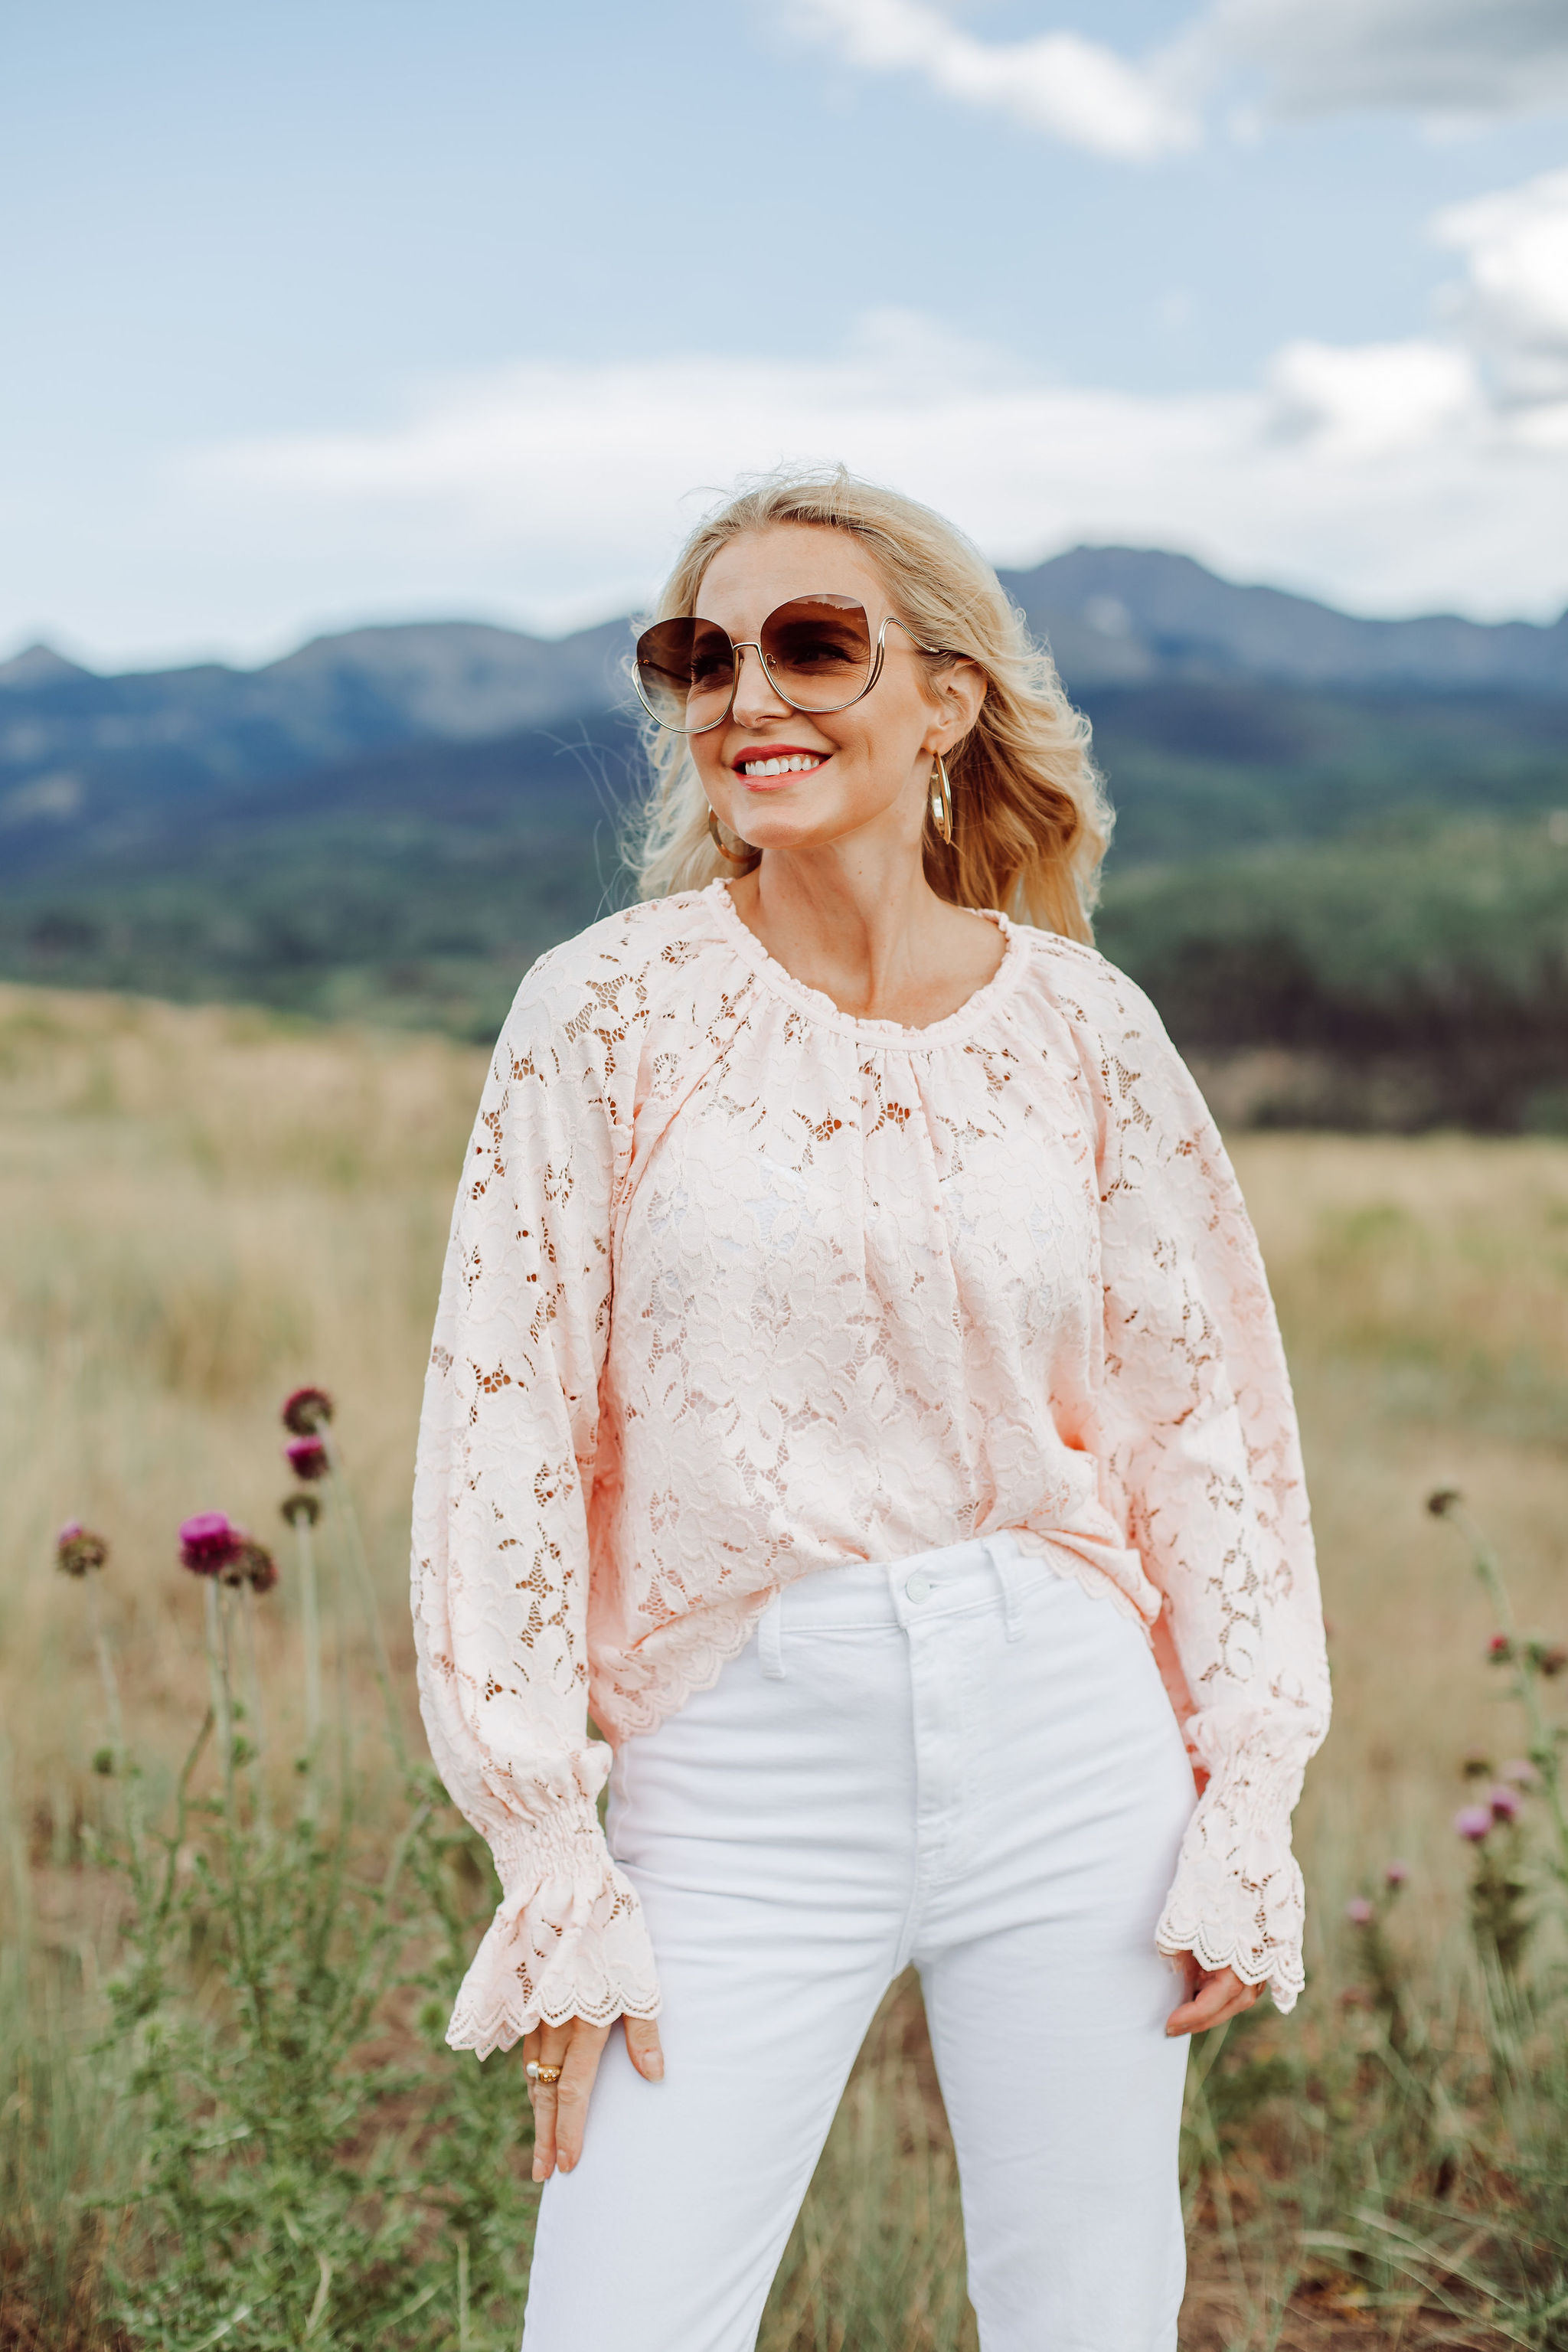 White Jeans Over 40, Fashion blogger Busbee Style wearing white 7 For All Mankind split hem jeans, pink lace long sleeve Free People top in Telluride, Colorado